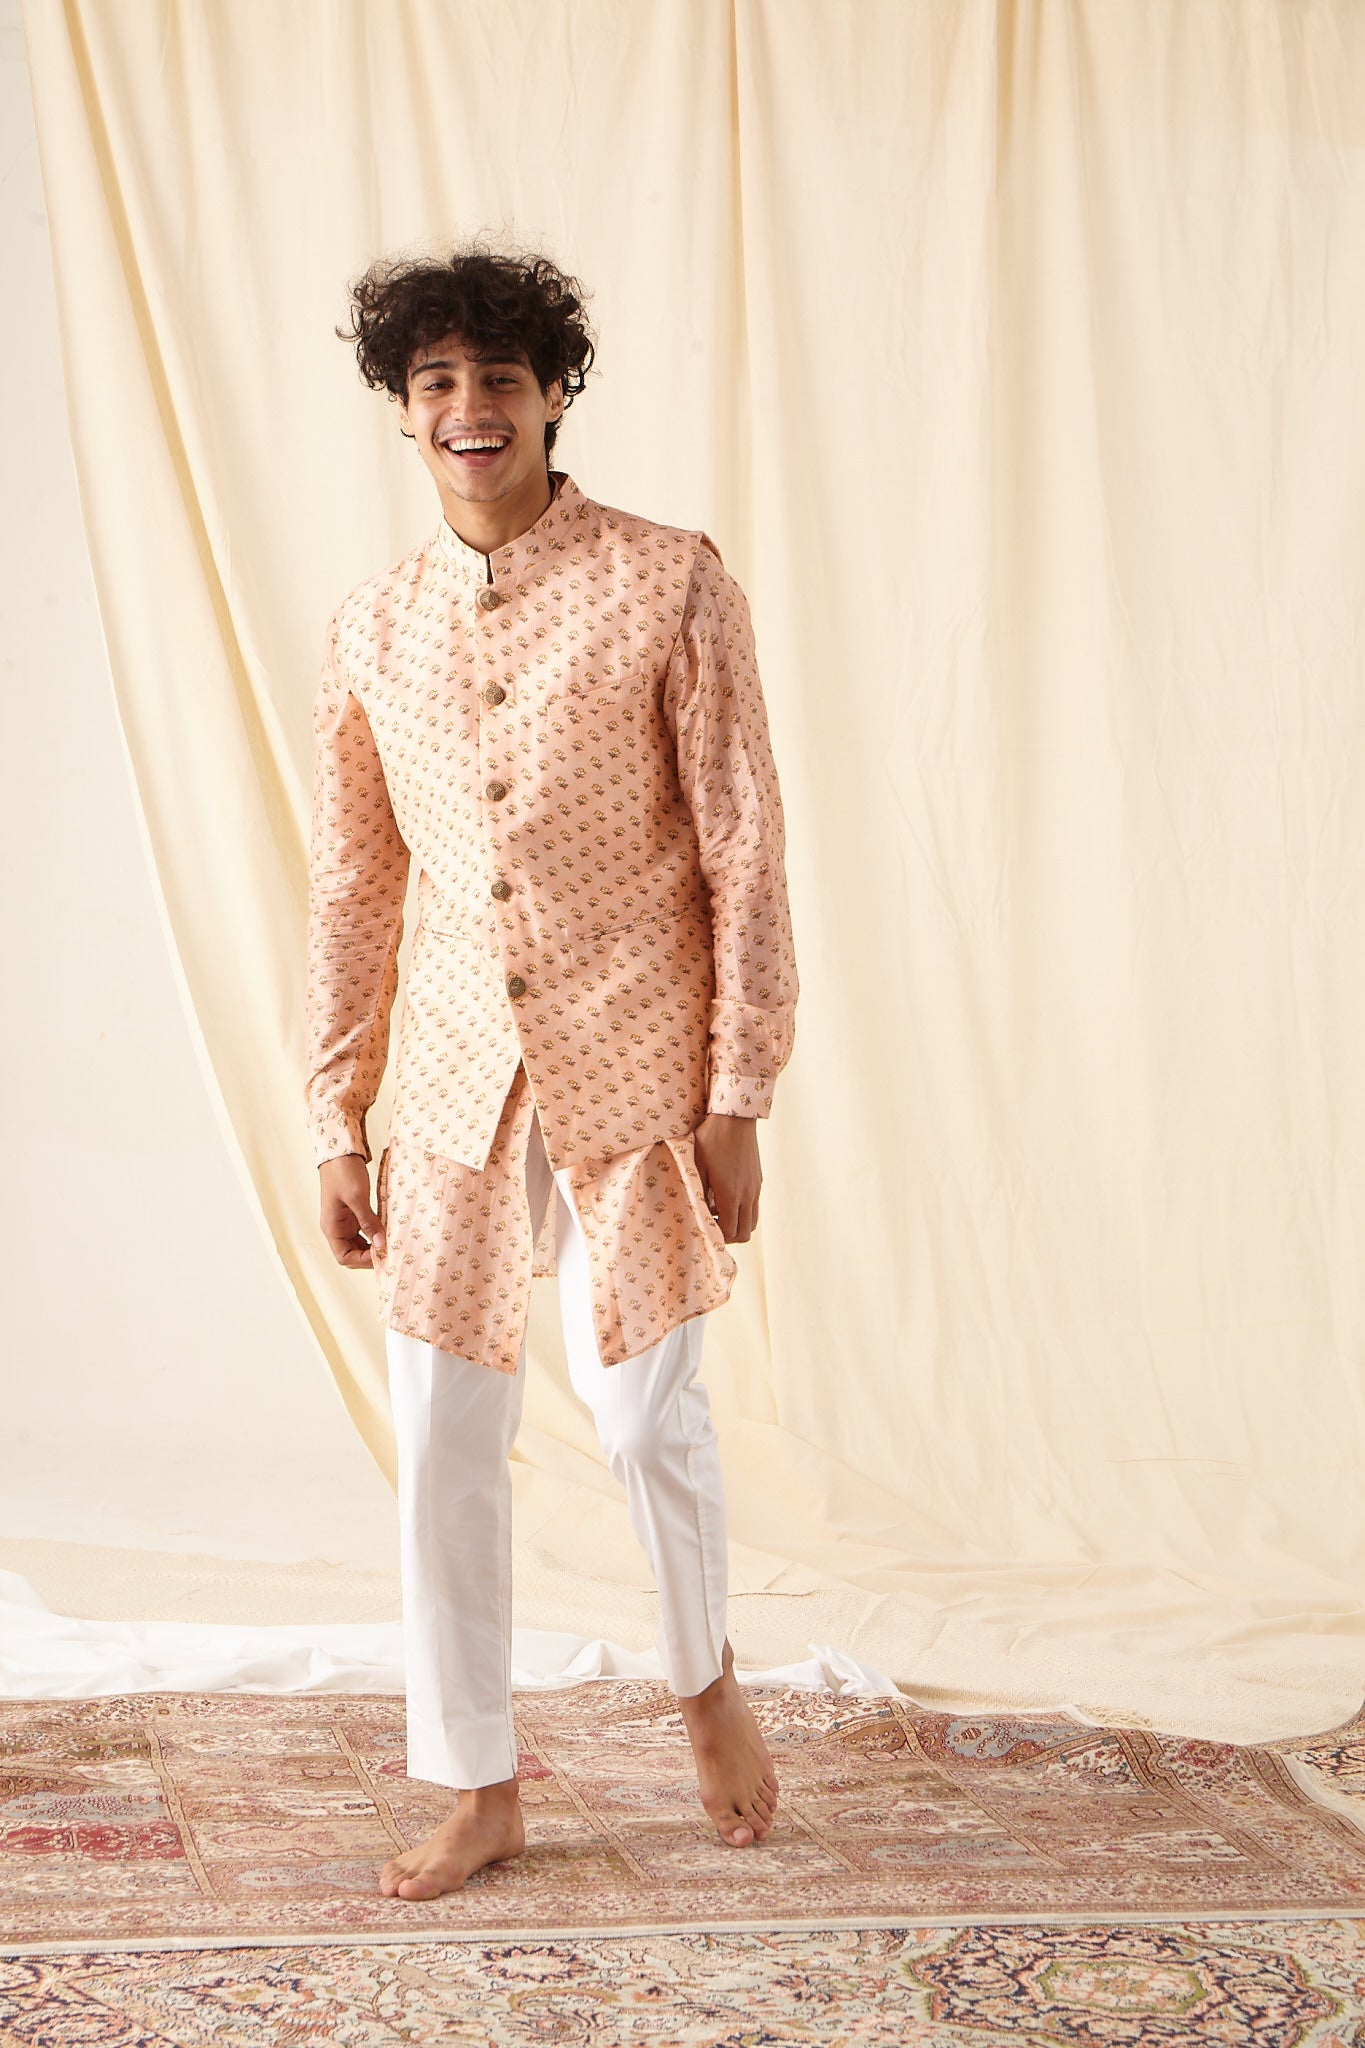 The Peach Bageecha Cotton Kurta Pajama Set with matching Bandi